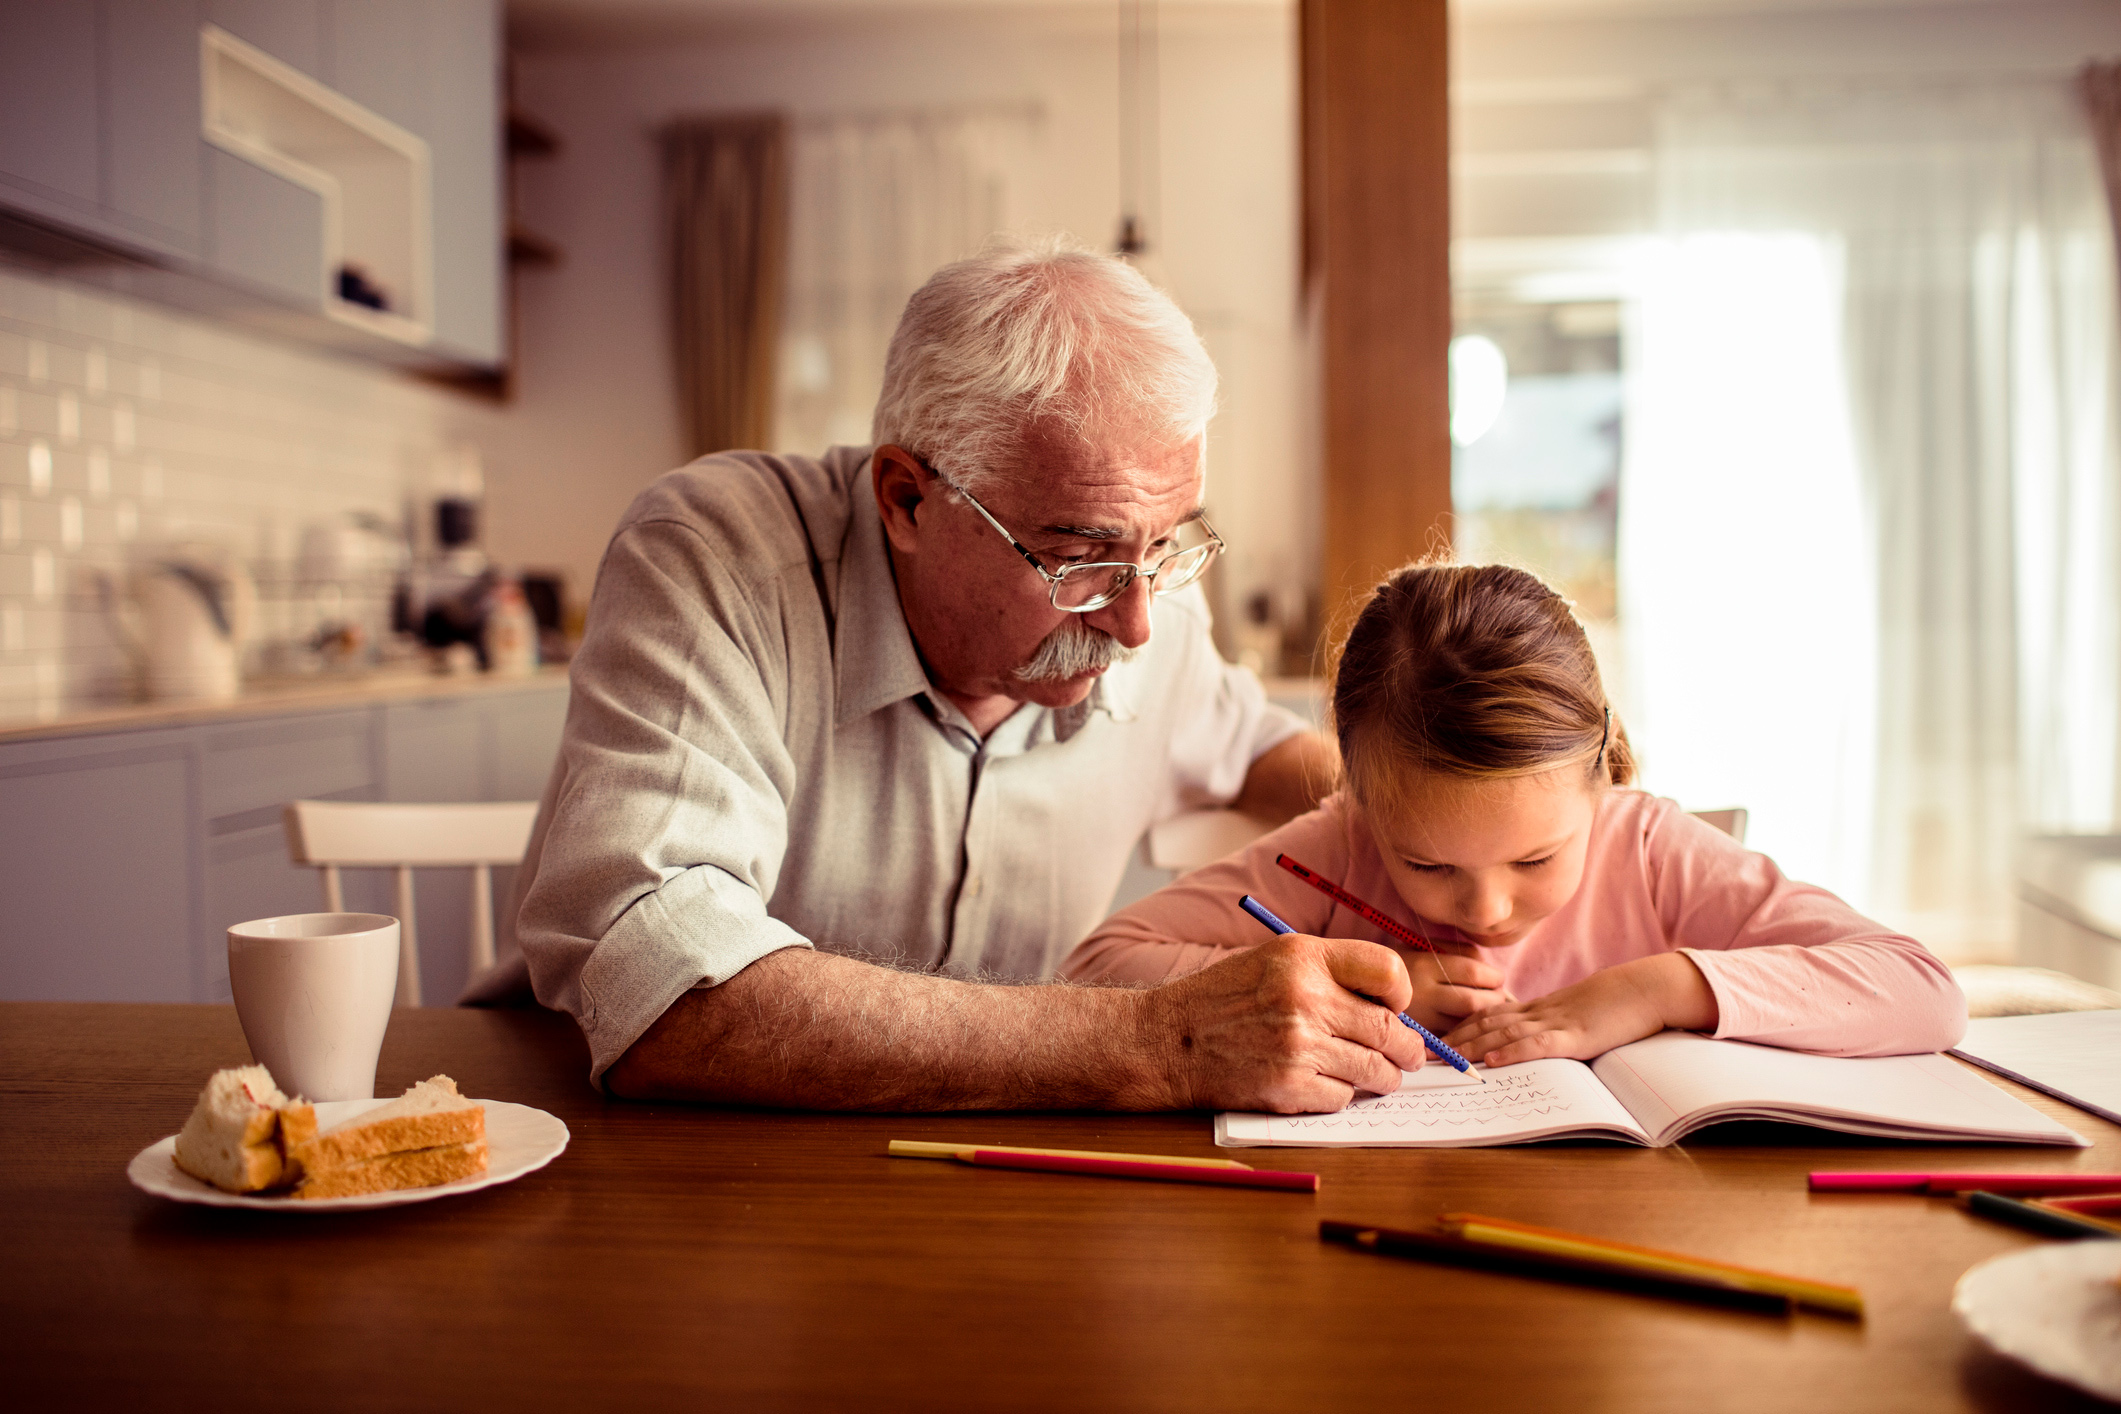 Grandfather and granddaughter are seated at the kitchen table while looking at homework. Grandfather is marking the workbook with a blue colored pencil while grandaughter observes.